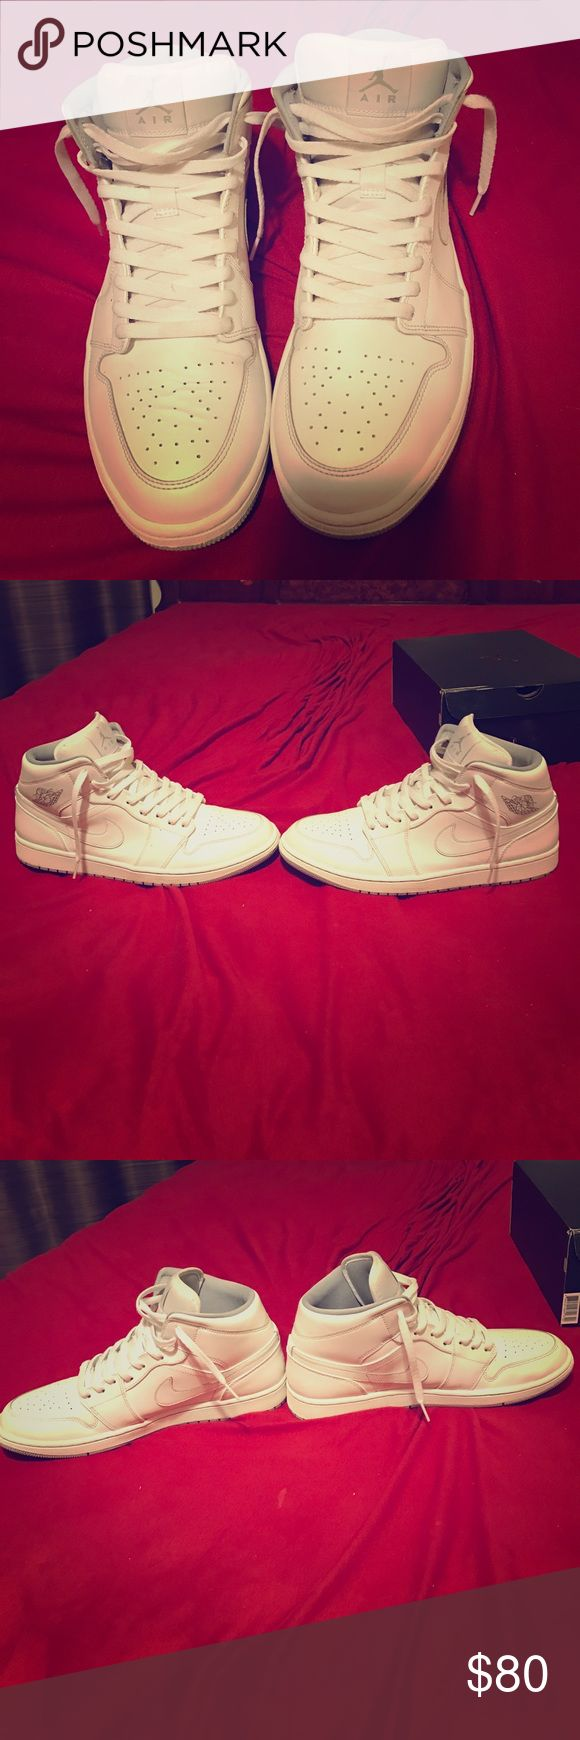 Jordan One's white and wolf grey Almost perfect condition little creases (like 5) in one of the shoes other then that all great no bad smells lol Jordan Shoes Sneakers